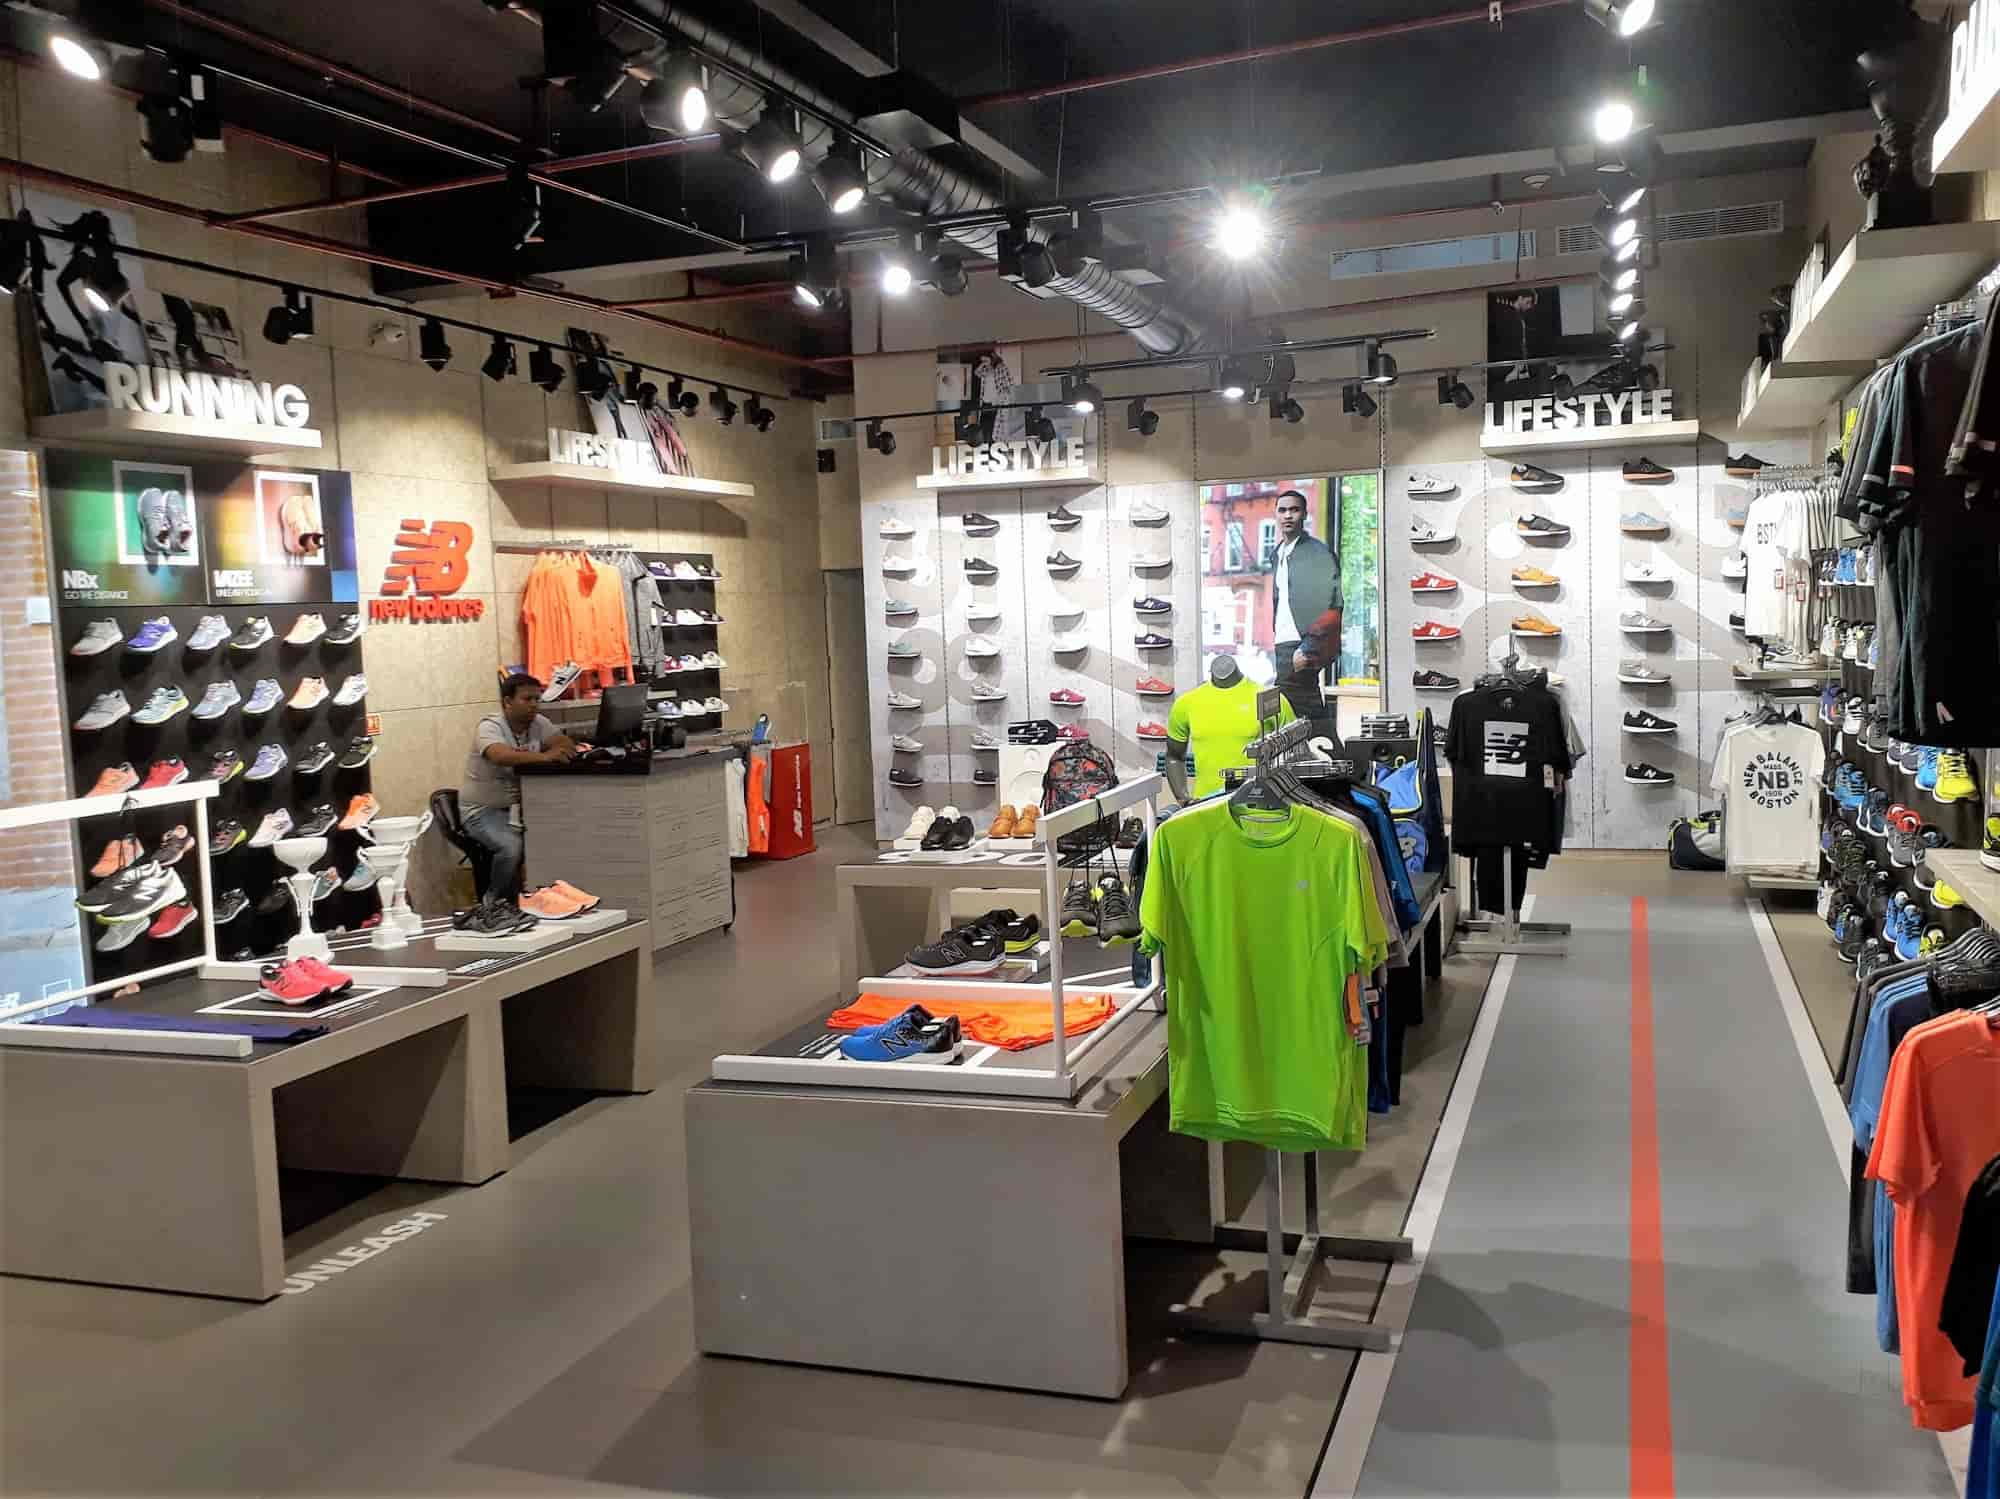 New Balance Store, Saket - Shoe Dealers in Delhi - Justdial